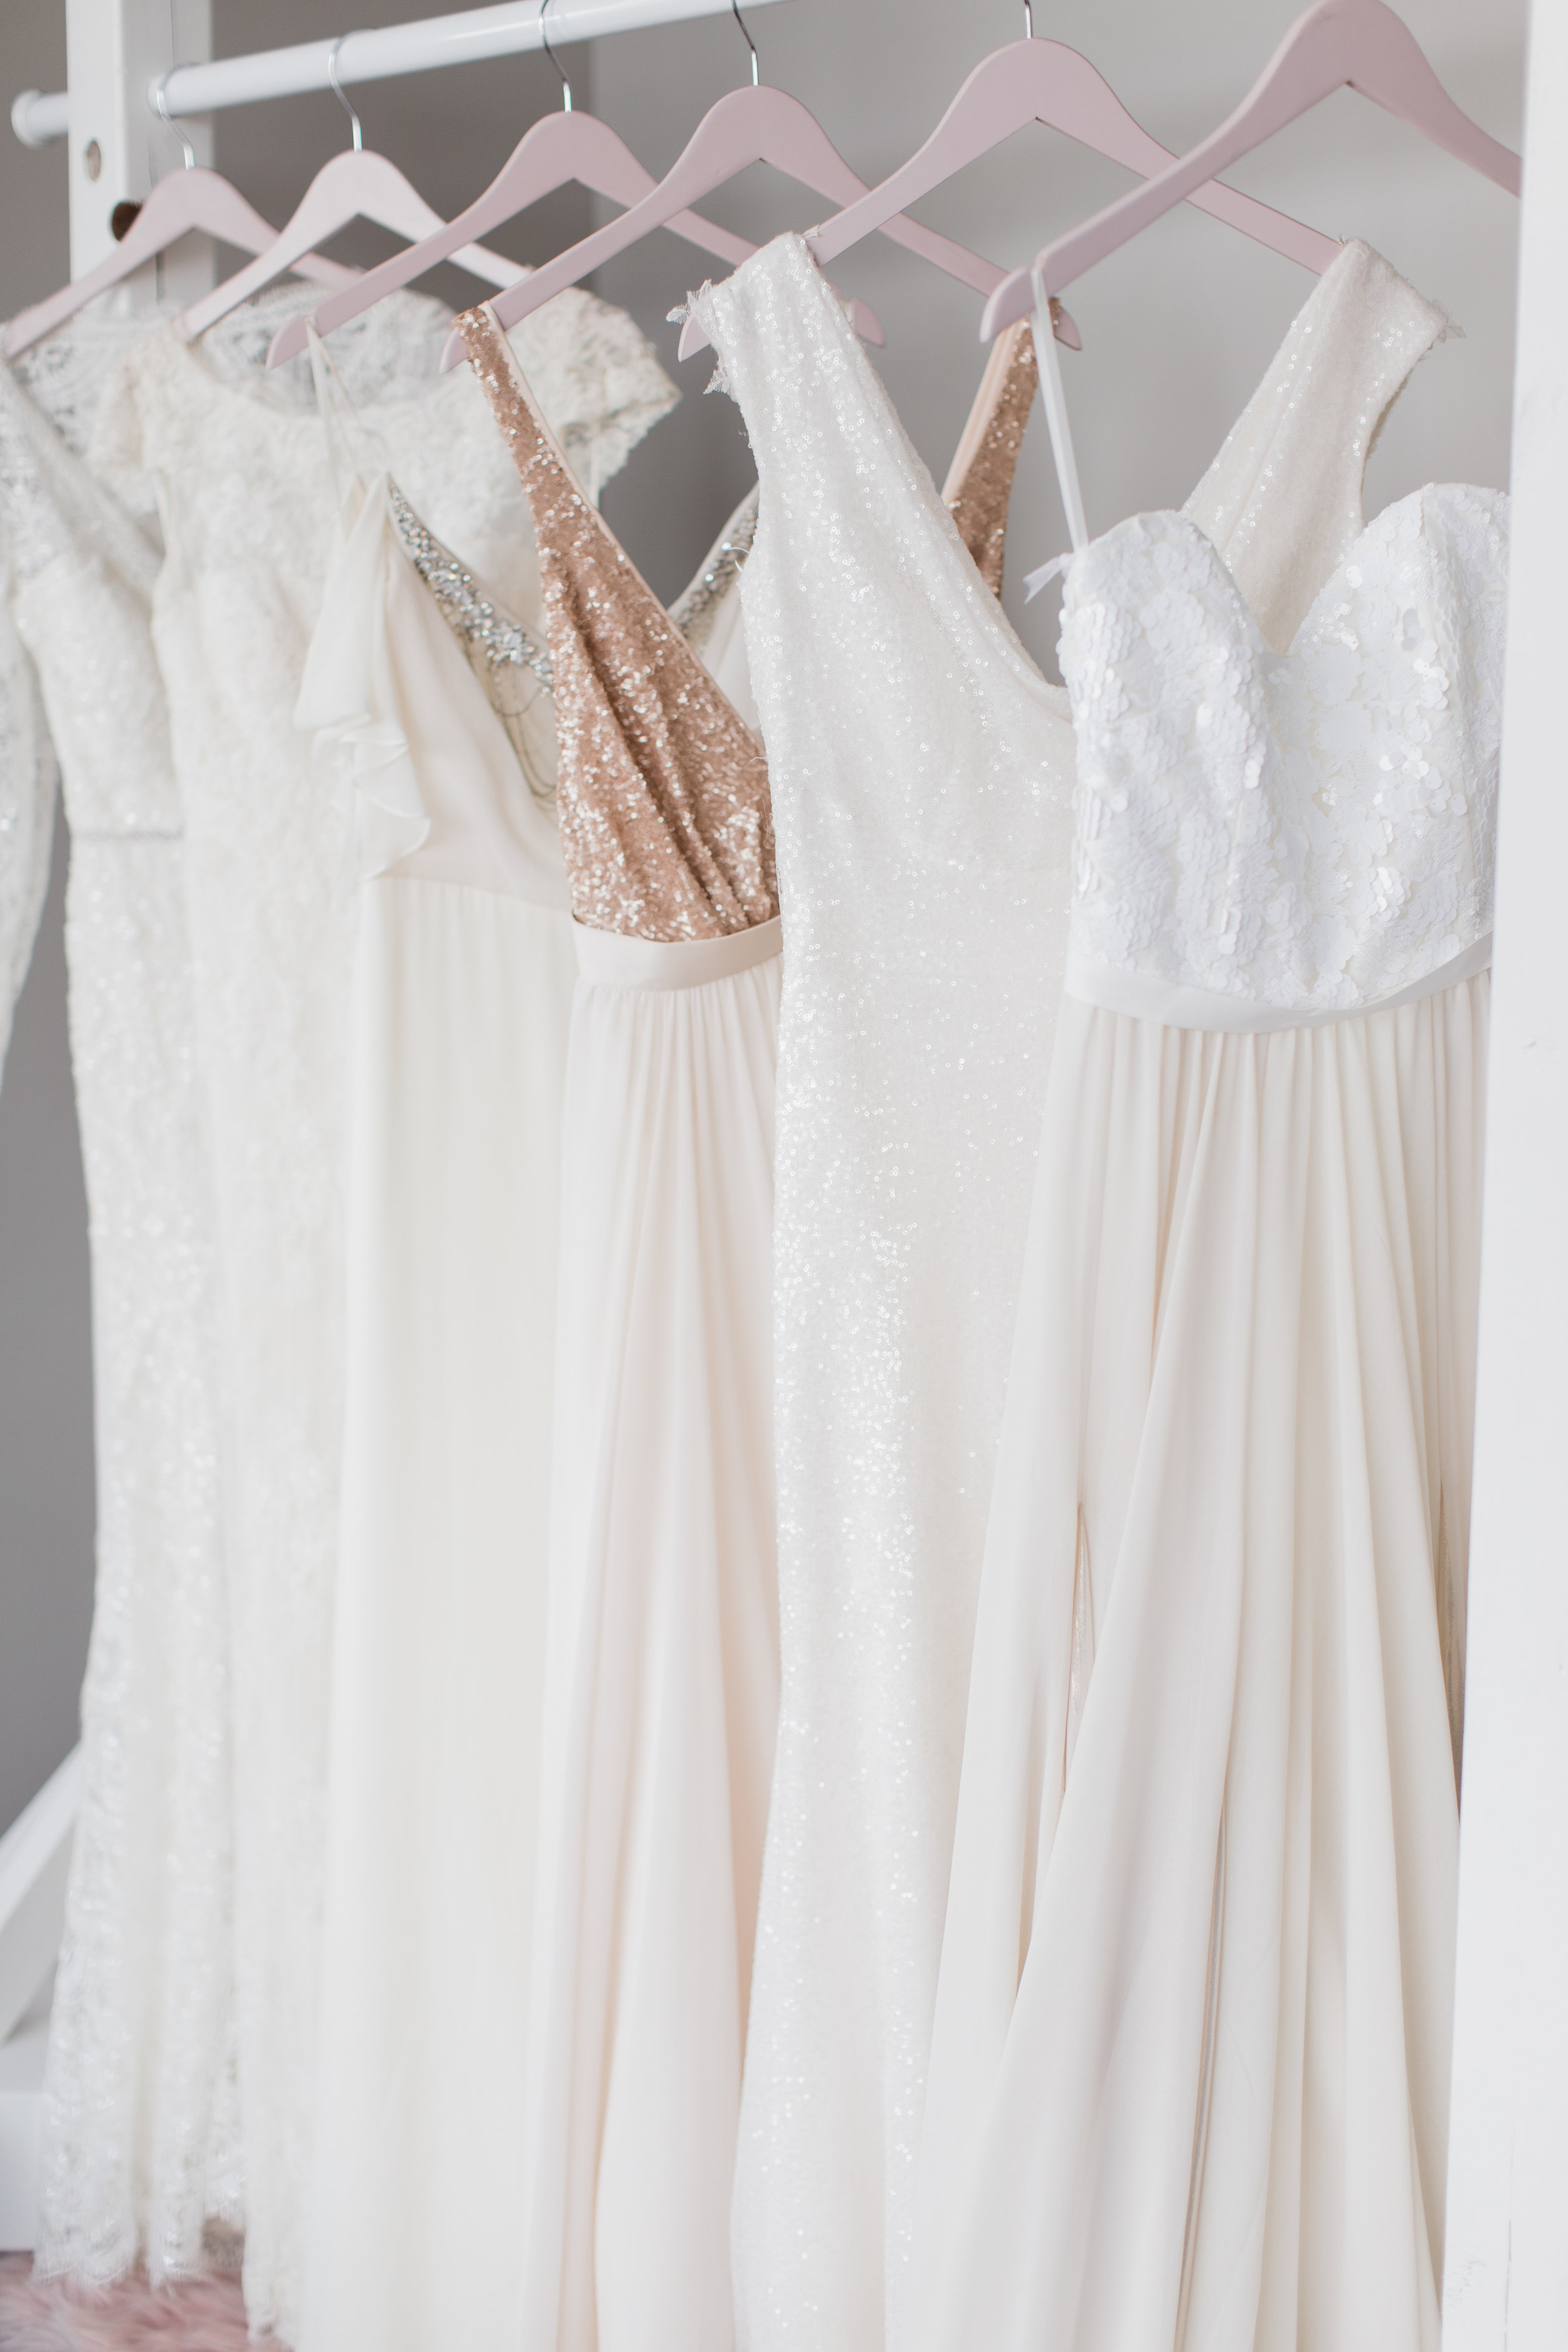 - Brides love us for our designer discounted wedding gowns ranging in price from $500-$3700. (Almost all are under $2500.) Most bridal stores only sell their samples at special sales twice a year, but S&S lets our brides experience sample sale prices everyday!We are perfect for a bride with a short amount of time before her wedding! Our gowns are off-the-rack and ready to go home with you.